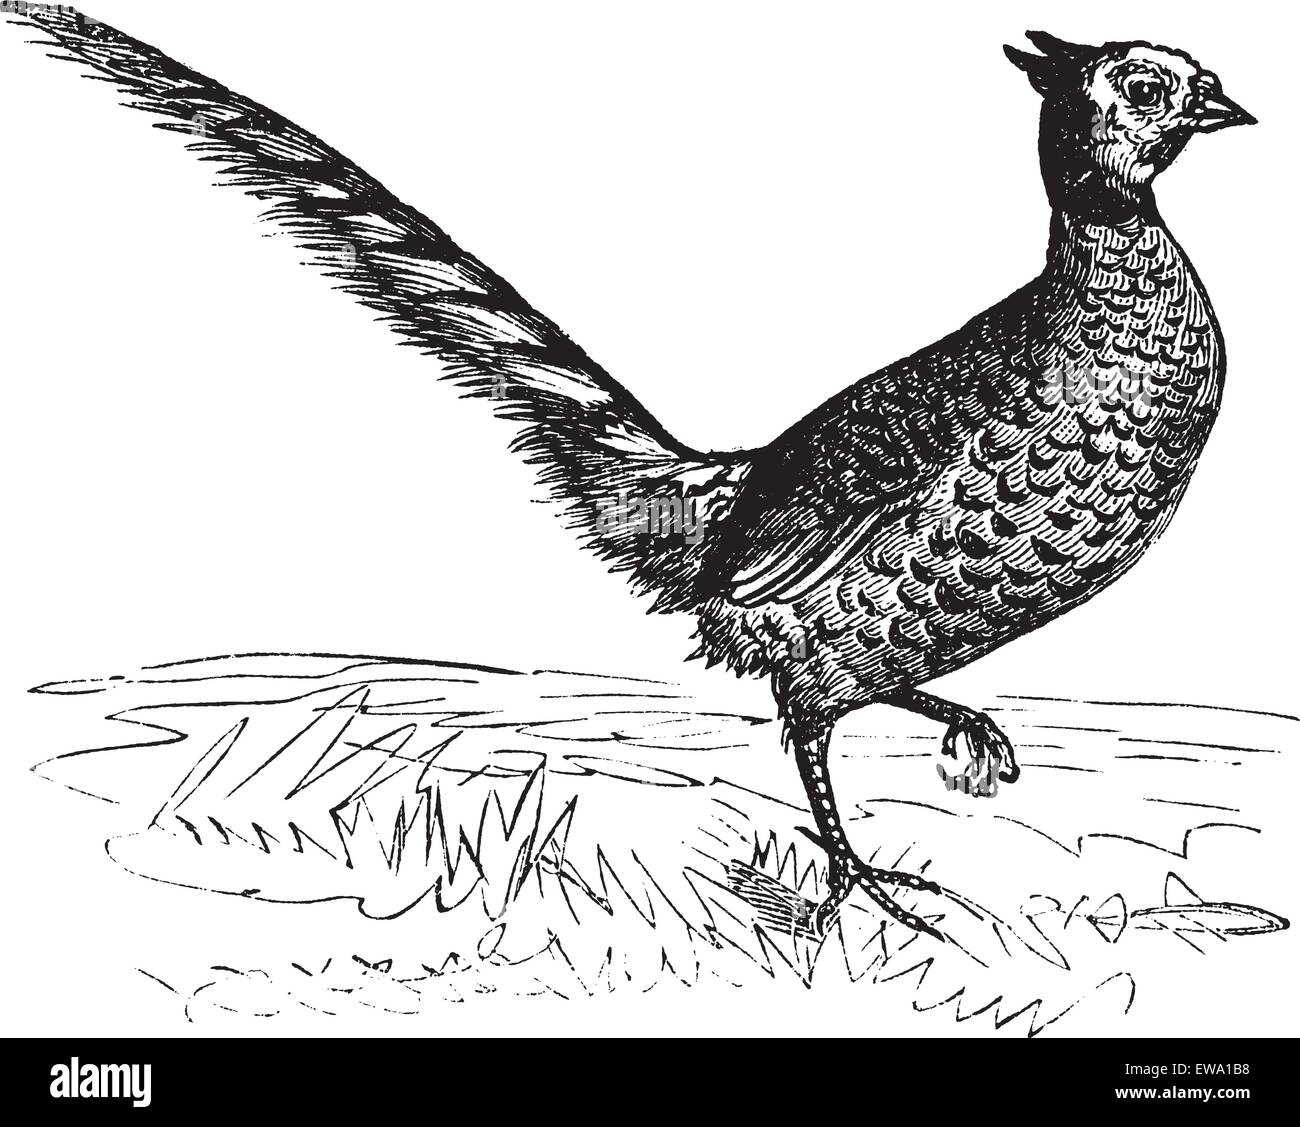 Common Pheasant or Phasianus colchicus, vintage engraving. Old engraved illustration of a Common Pheasant. - Stock Vector